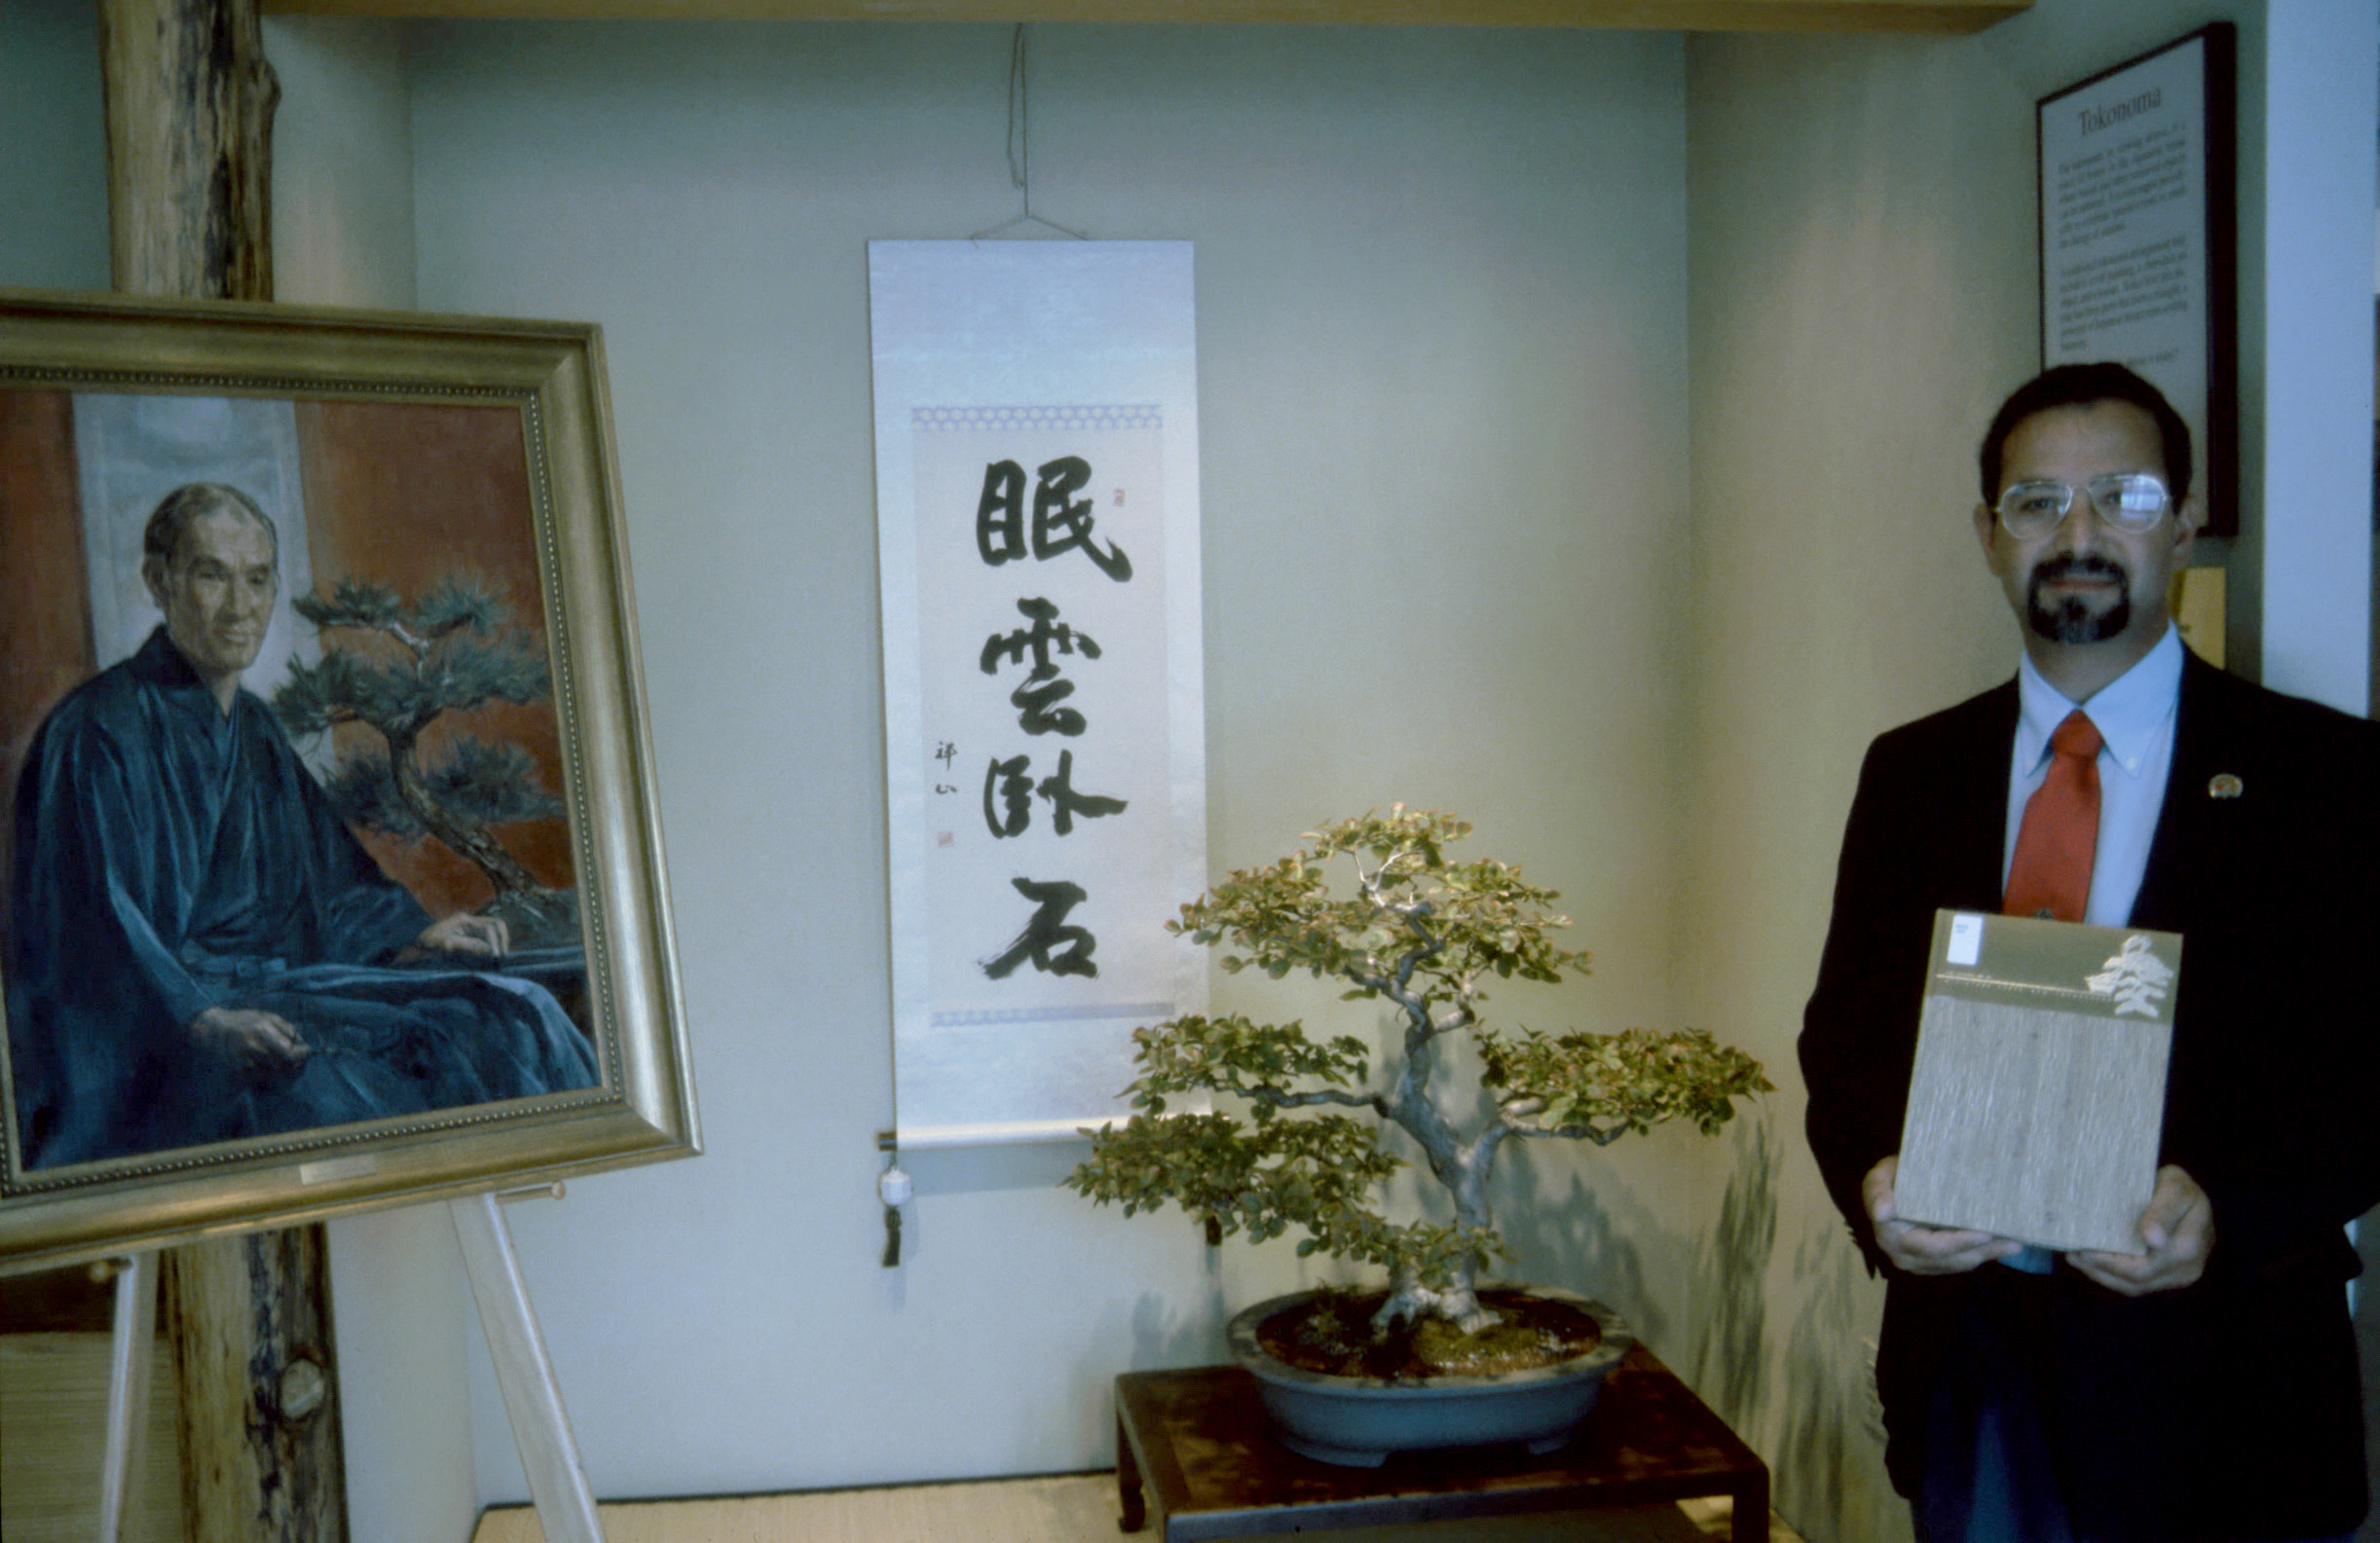 Yoshimura Portrait and Bill Valavanis at Museum